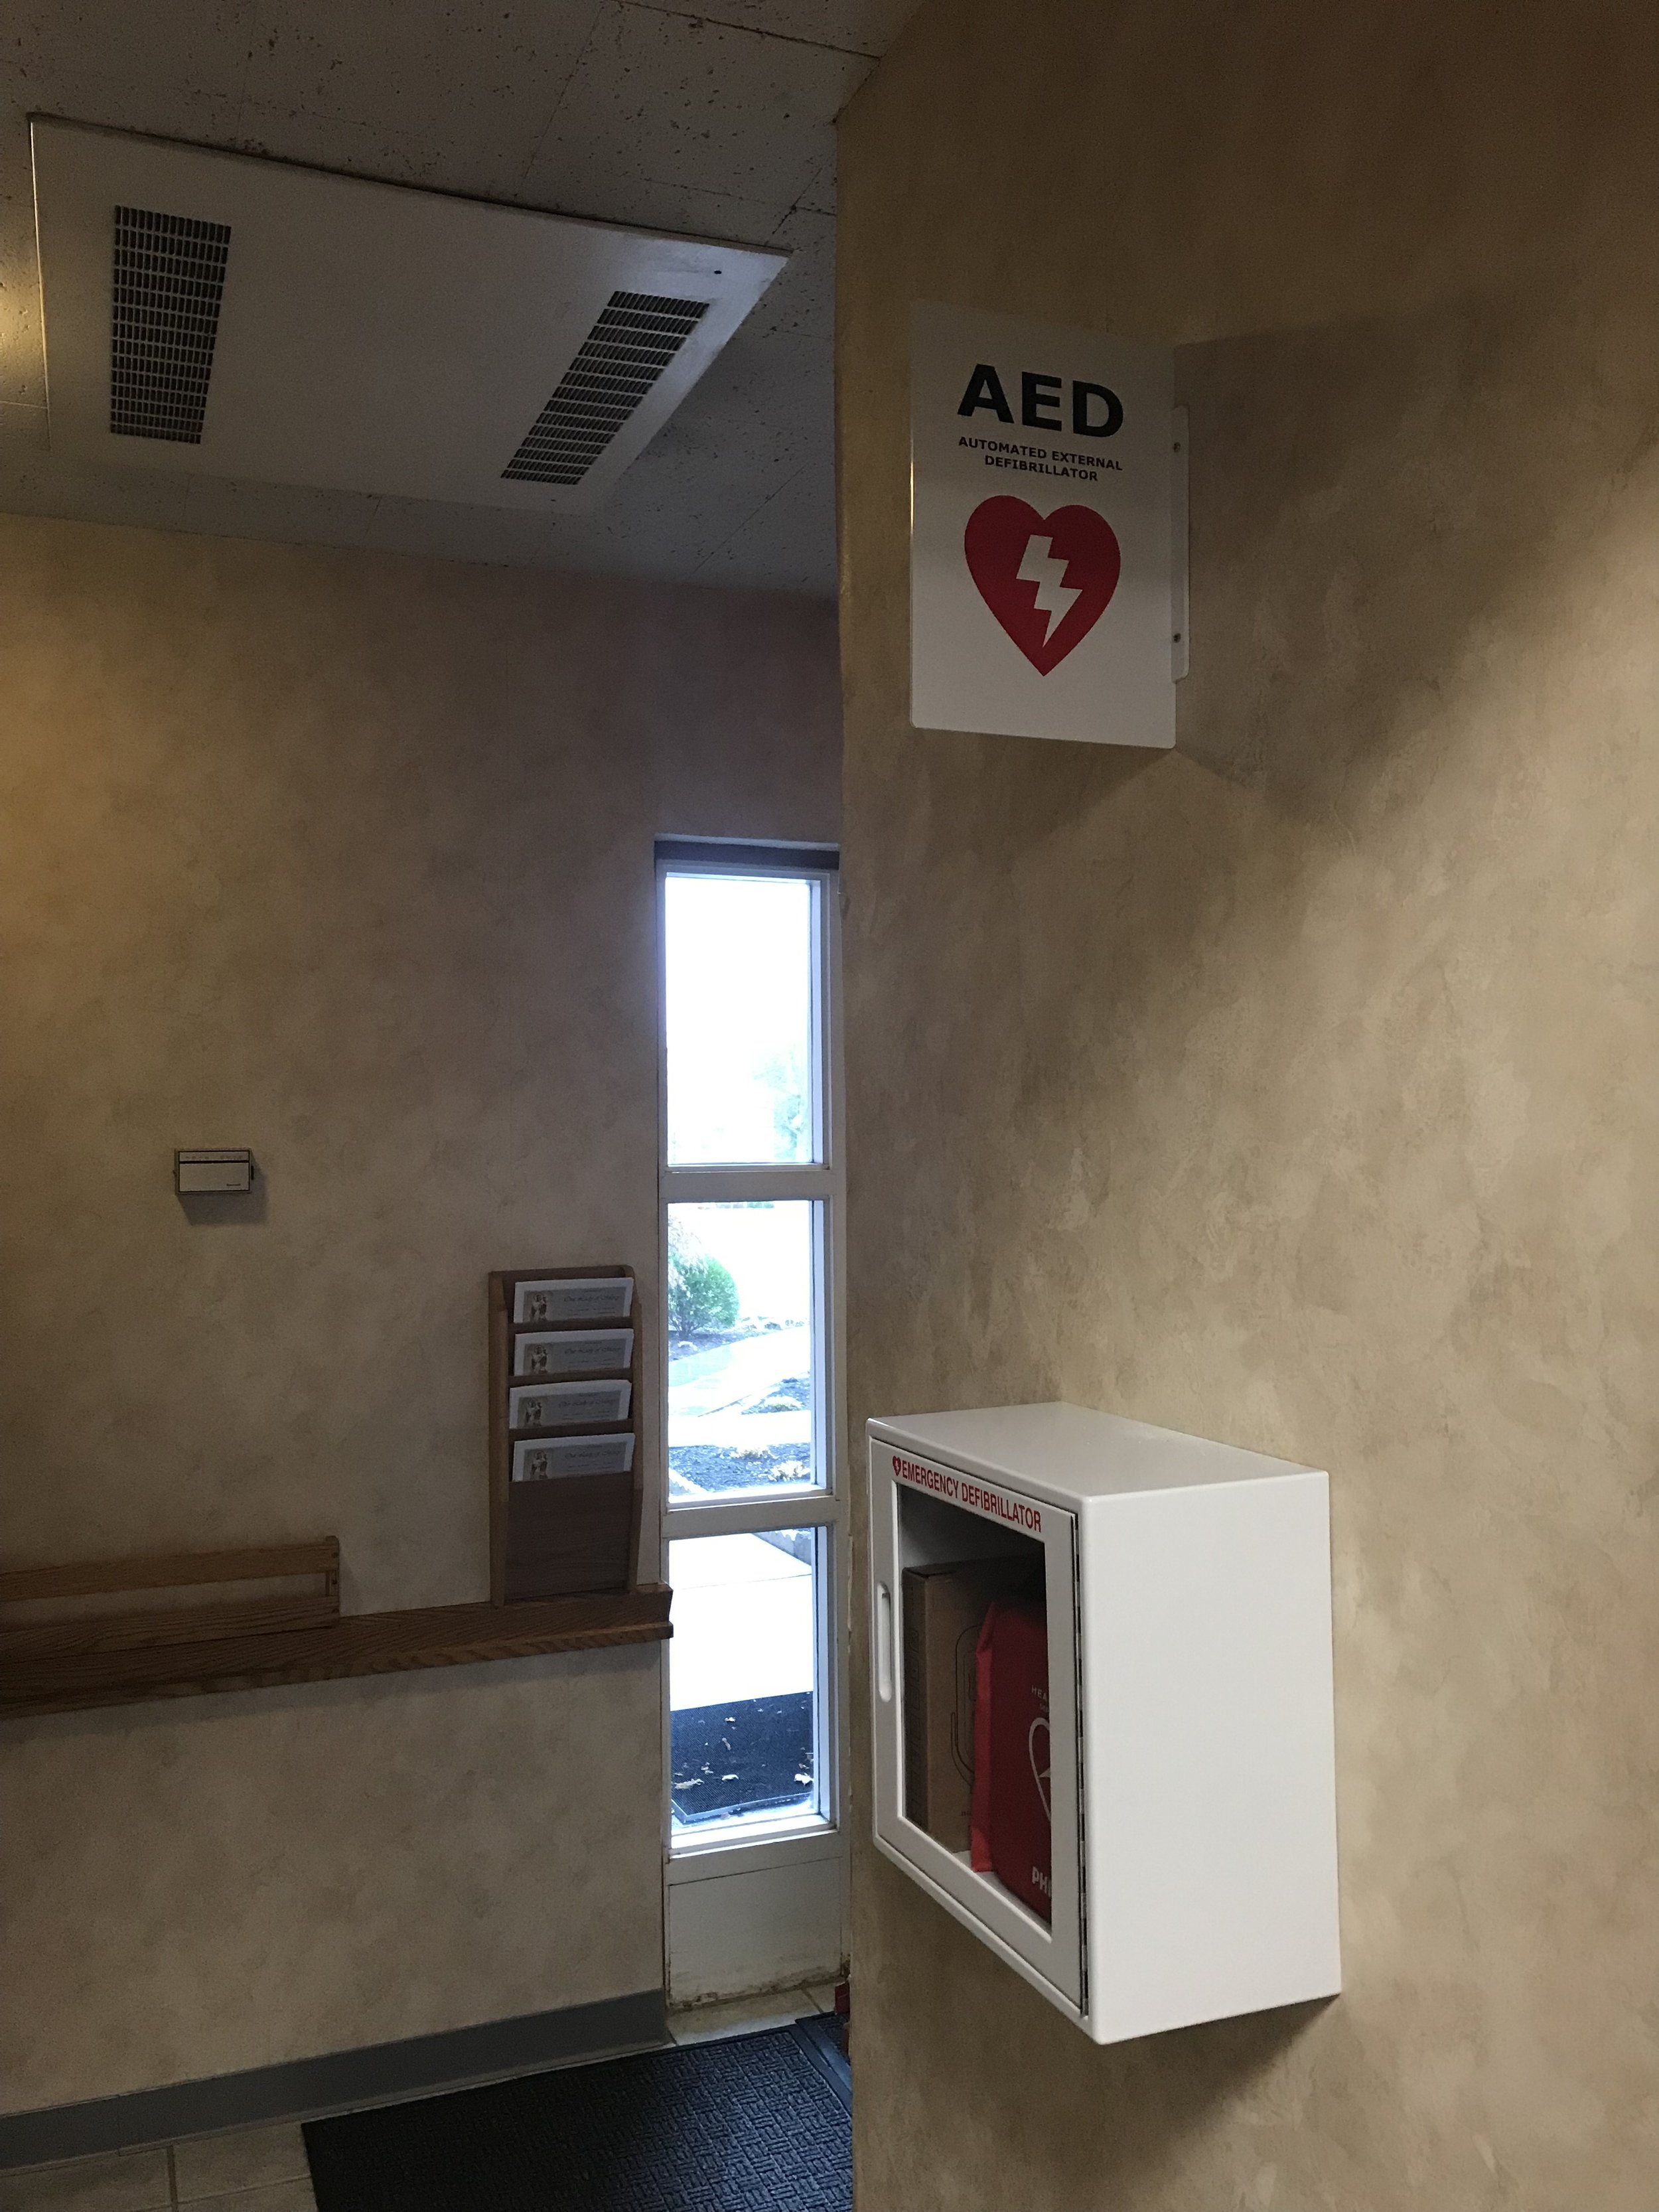 New AED by the OLM Sacristry Door.